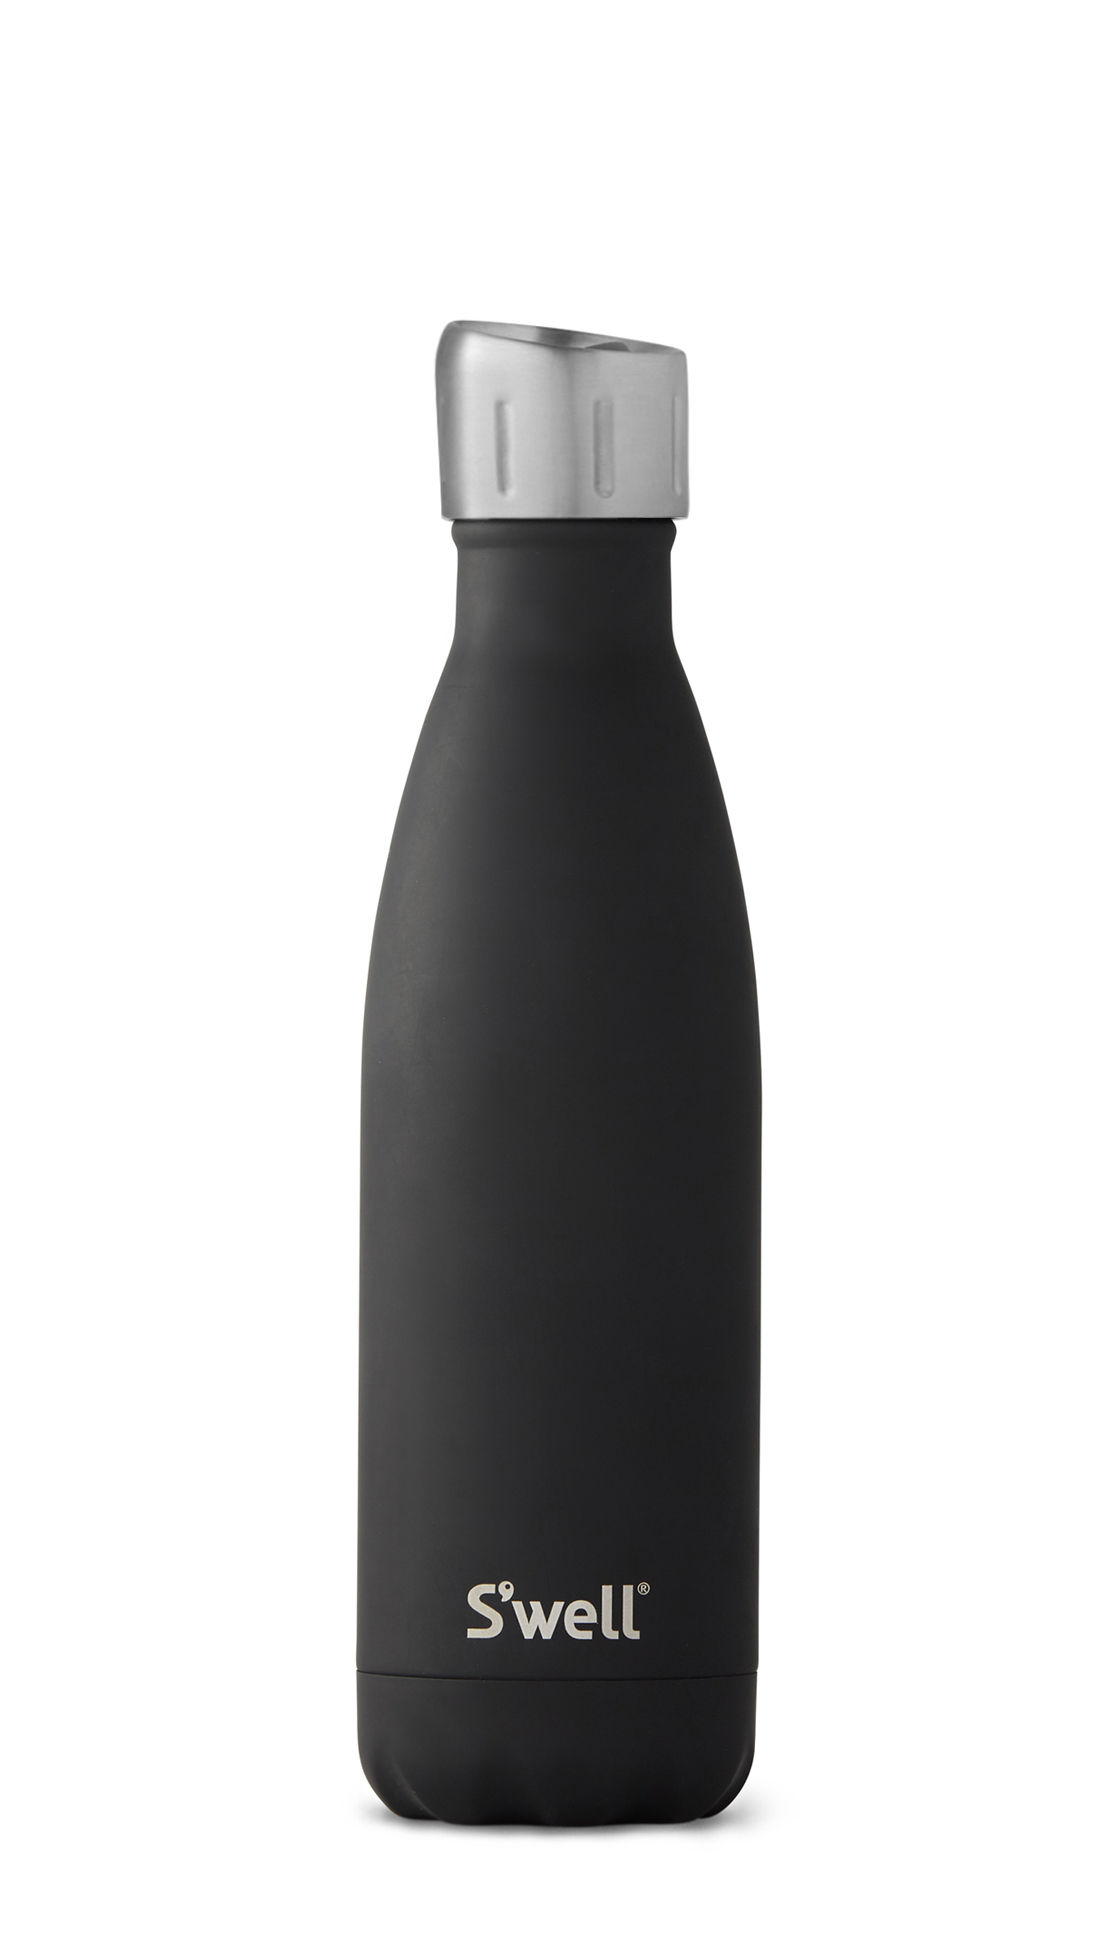 Black Insulated Stainless Steel Water Bottle S Well